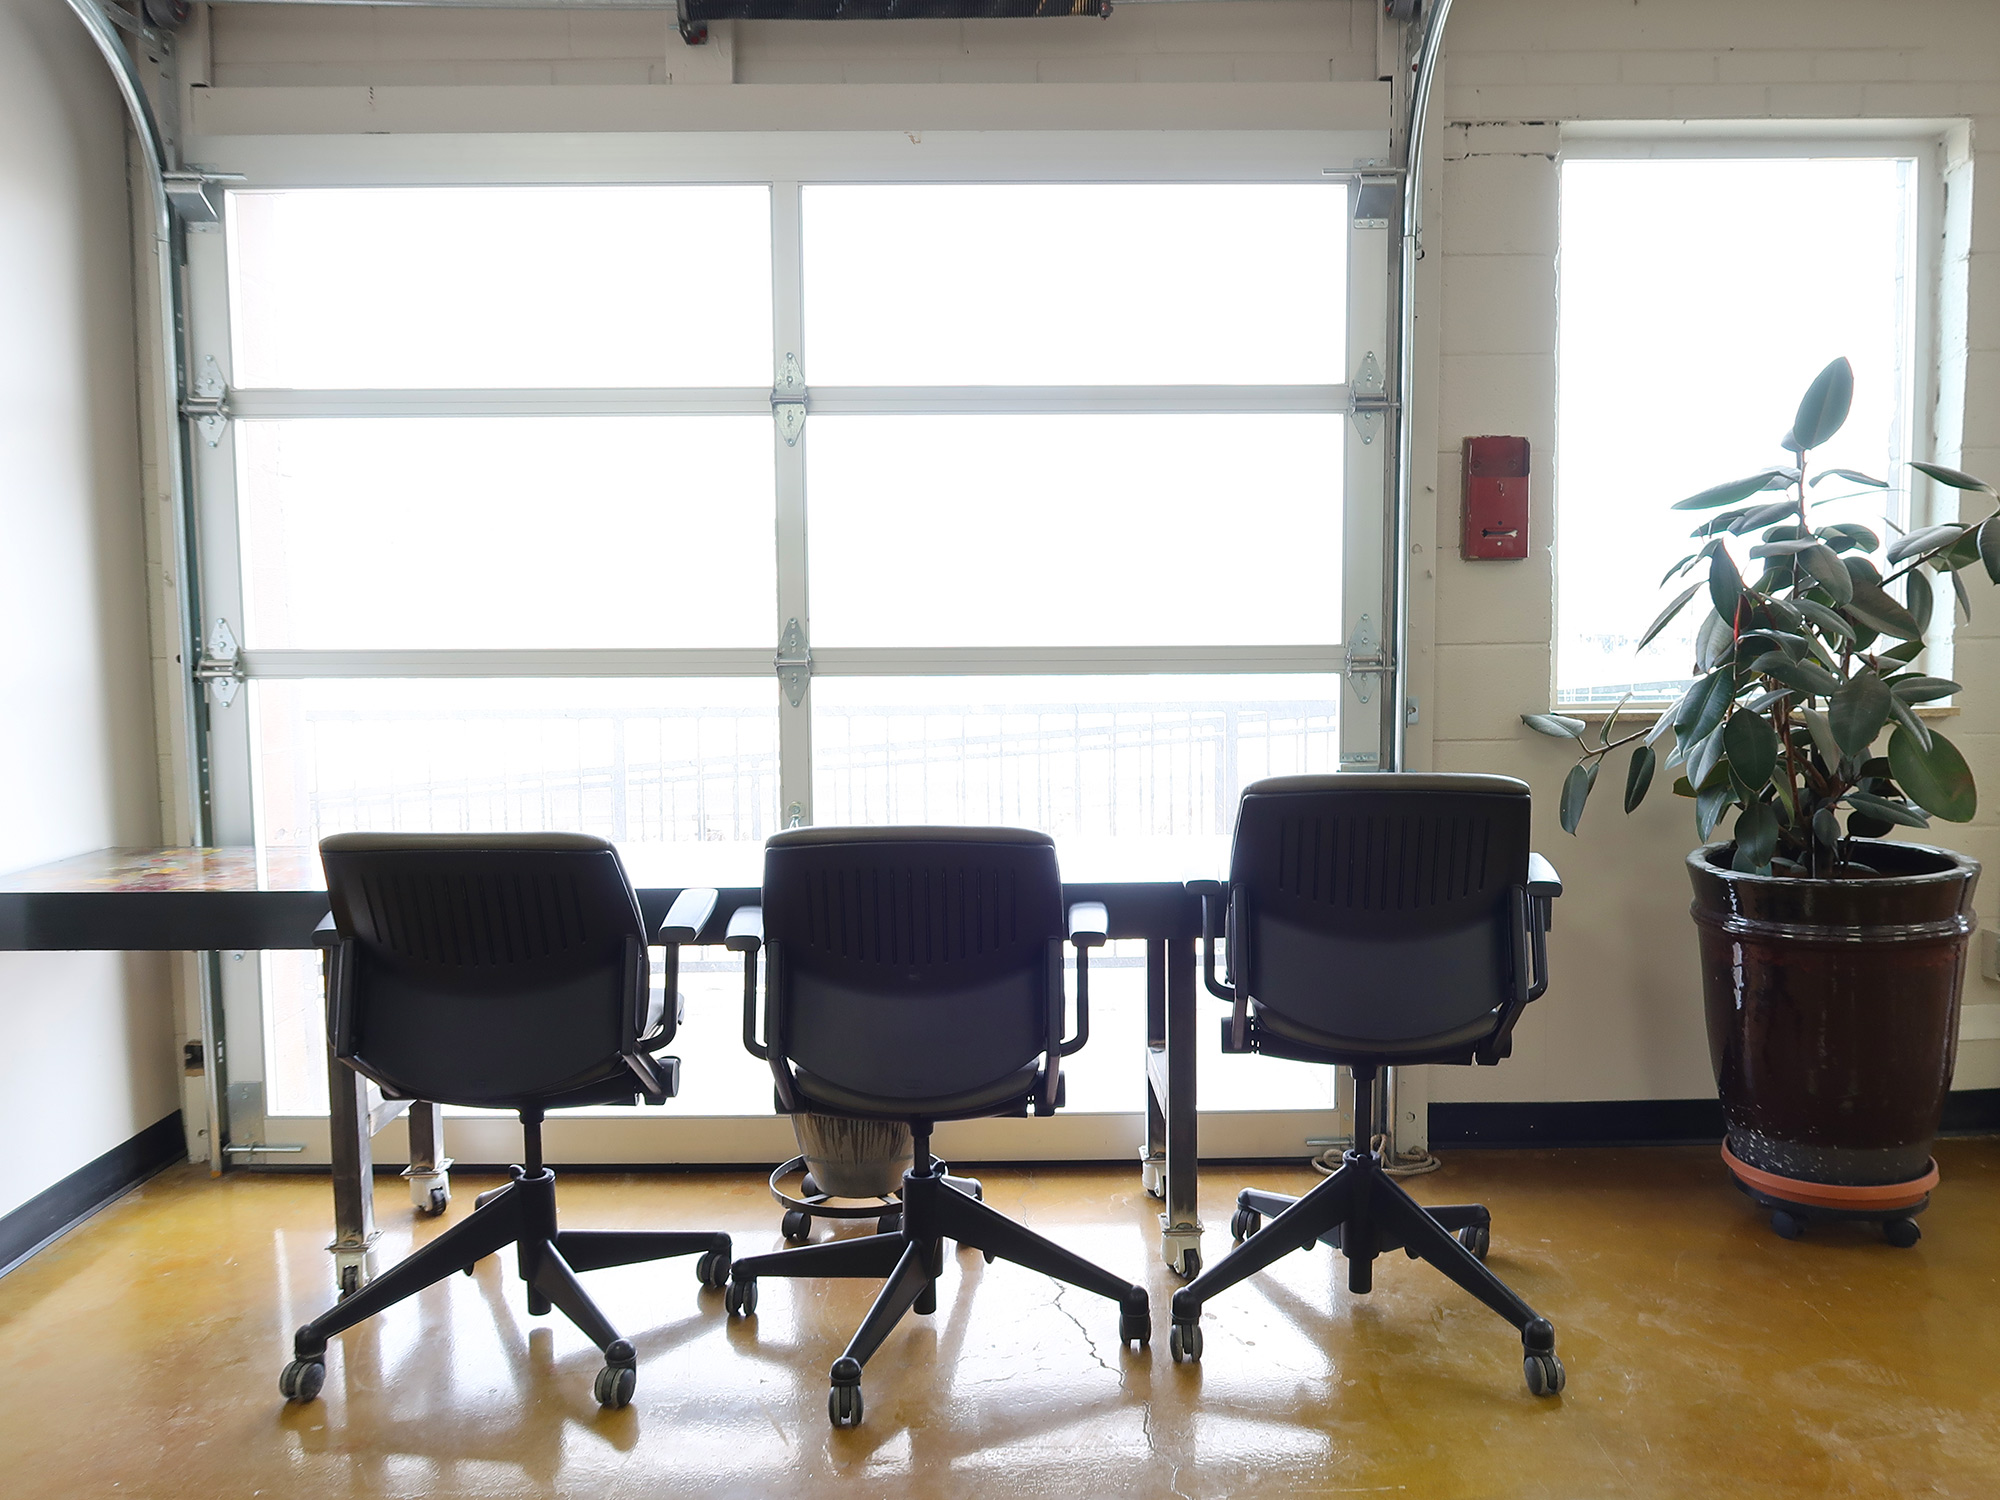 chairs of Mile High Coworking Space in Denver